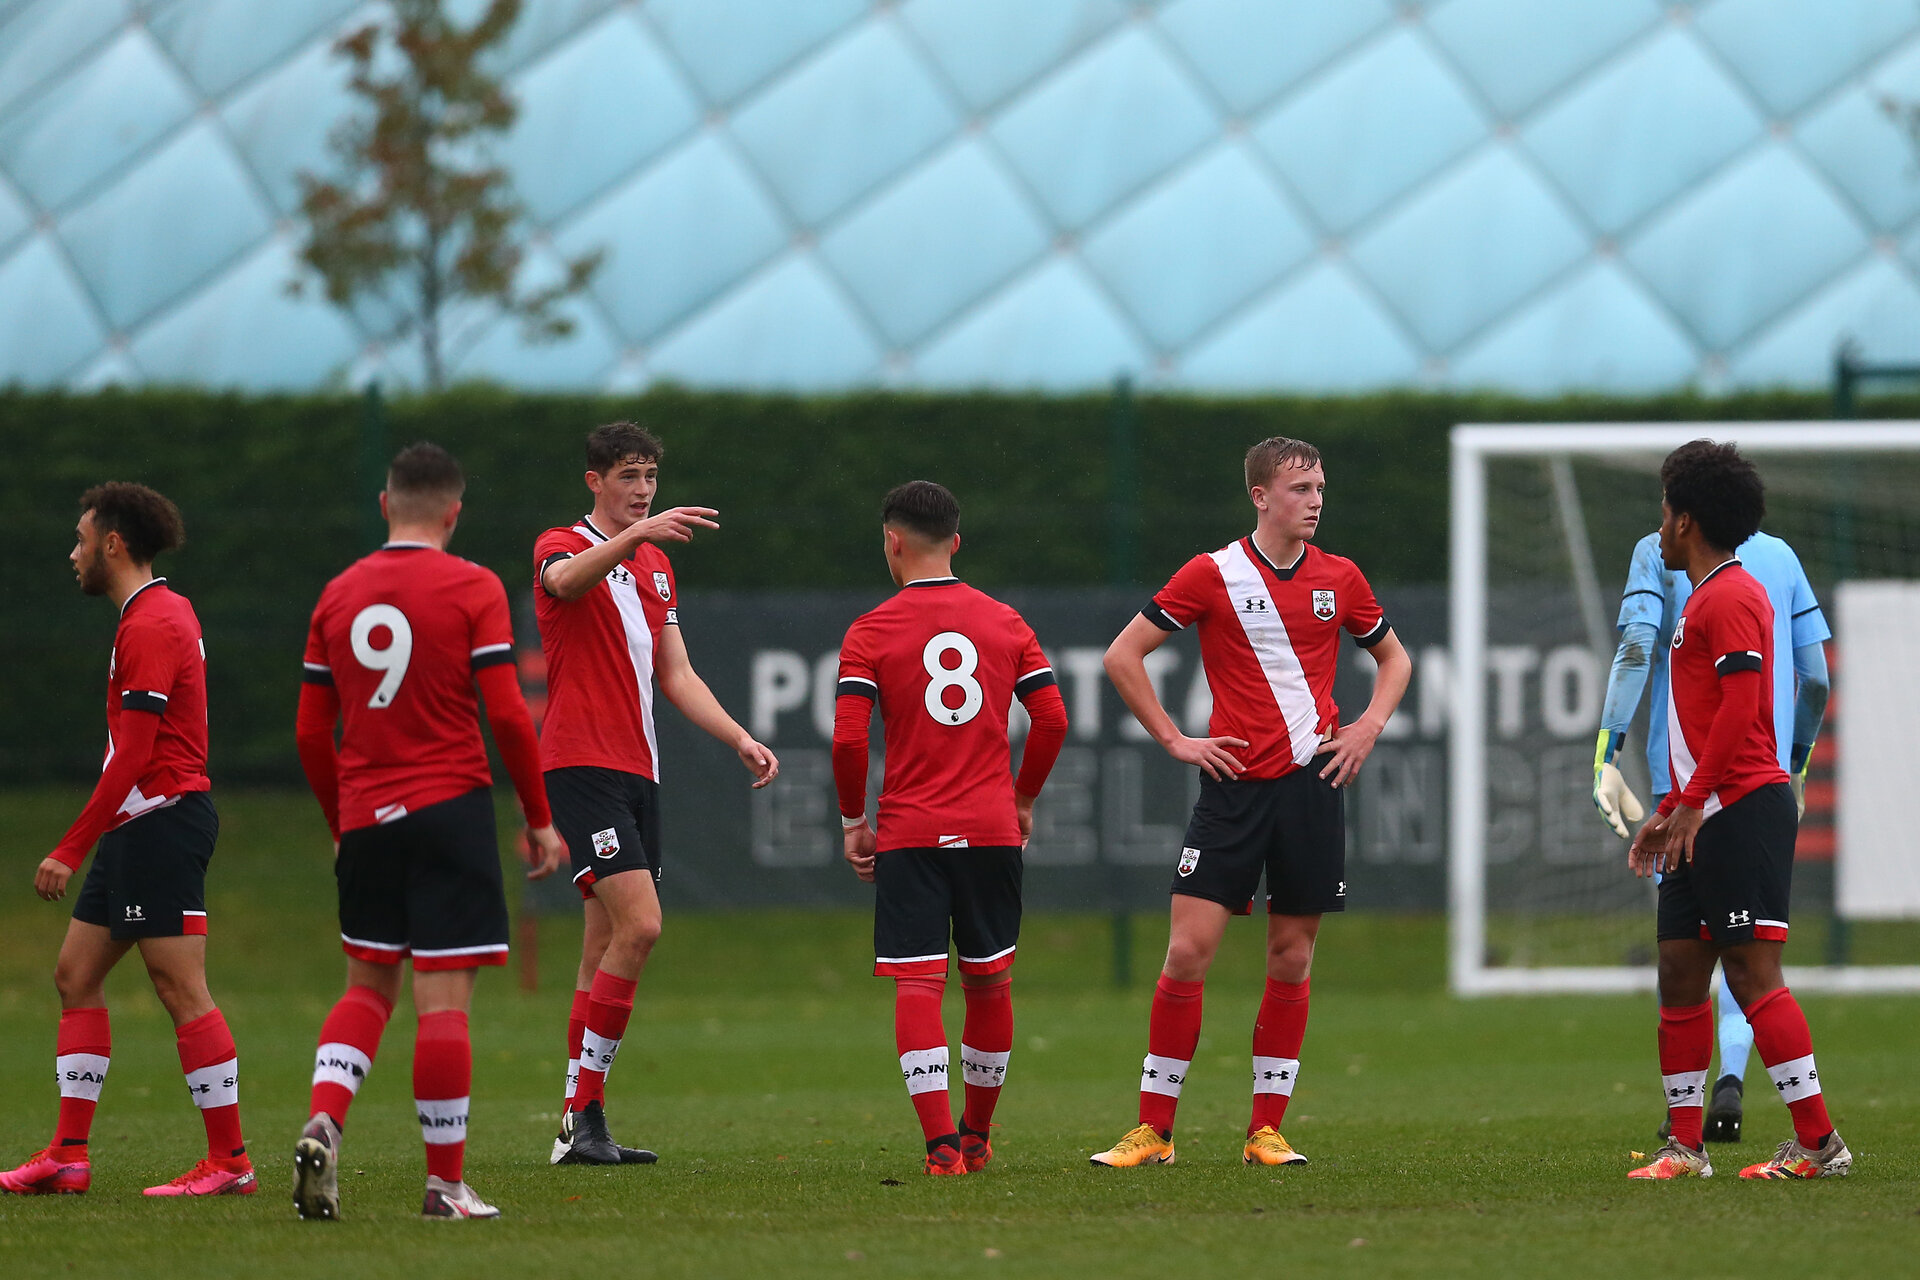 SOUTHAMPTON, ENGLAND - OCTOBER 31: Southampton players  during the Premier League U18s match between Southampton U18s and Fulham FC at Staplewood Training Ground on October 31, 2020 in Southampton, England. (Photo by Isabelle Field/Southamtpon FC)